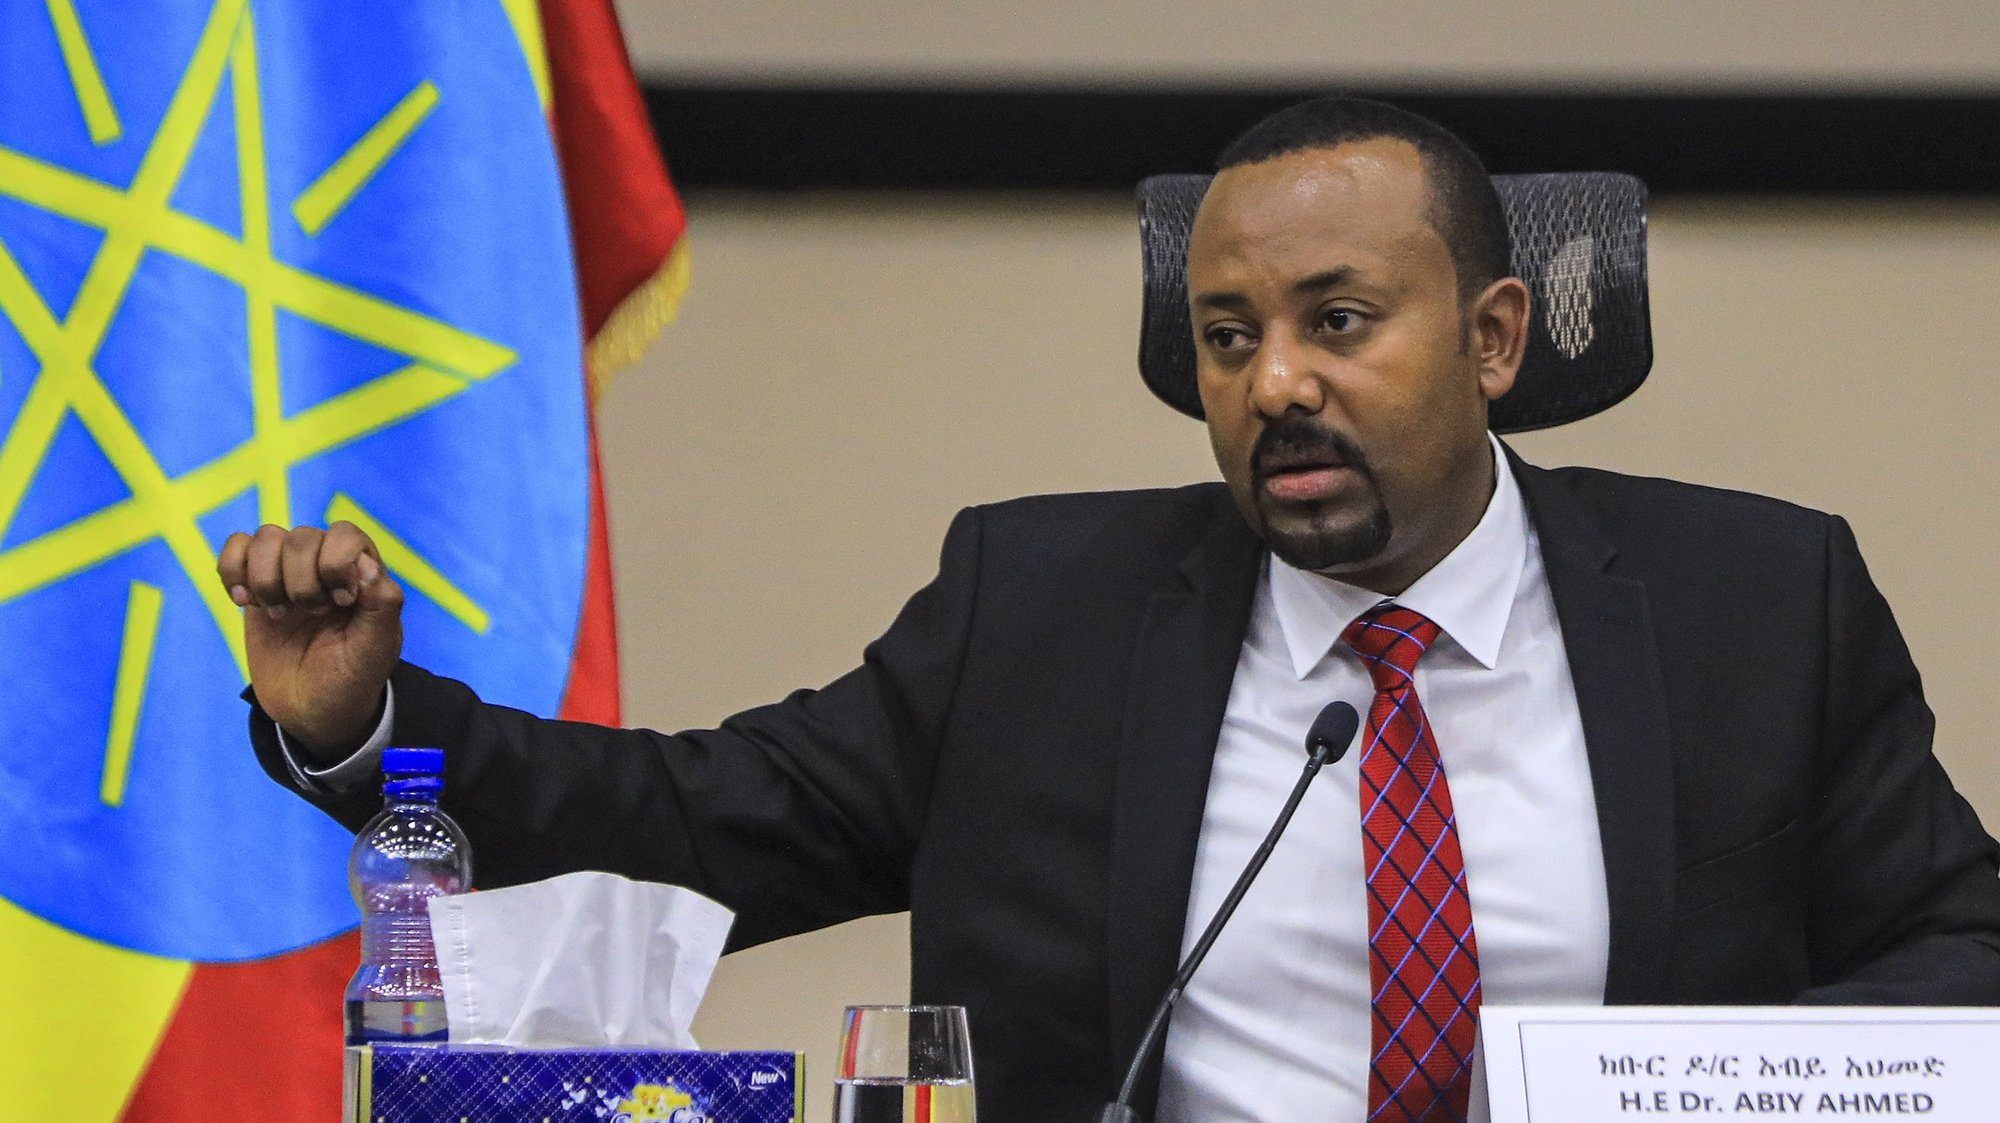 epa08852855 Ethiopian Prime Minister Abiy Ahmed speaks during a question and answer session in parliament, Addis Ababa, Ethiopia 30 November 2020. Ethiopia's military intervention in the northern Tigray region comes after Tigray People's Liberation Front (TPLF) forces allegedly attacked an army base on 03 November 2020 sparking weeks of unrest with over 40,000 refugees fleeing to Sudan.  EPA/STR